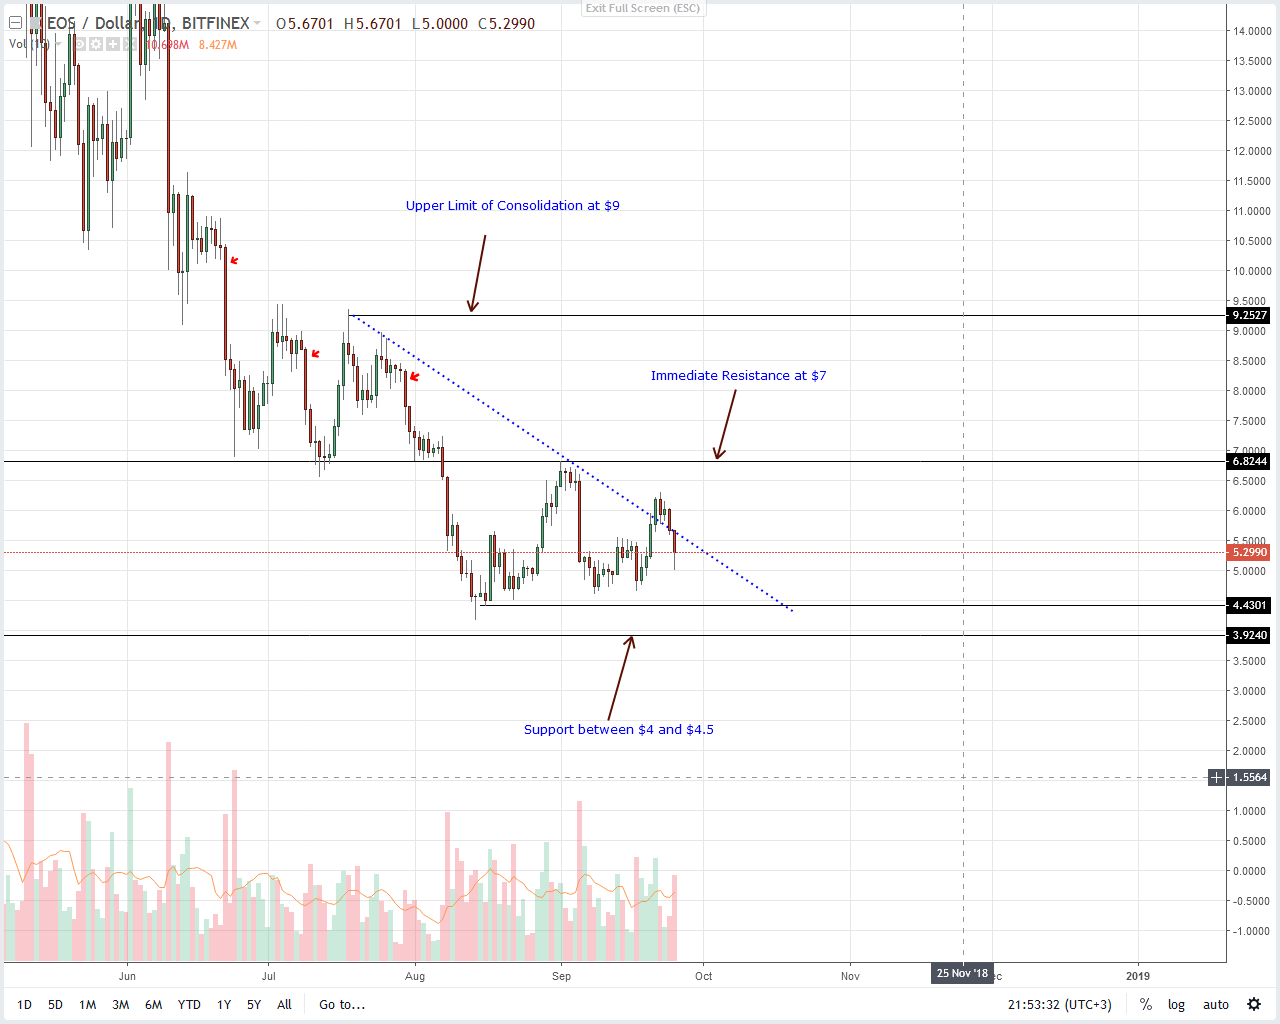 EOS Daily Chart Sep 26